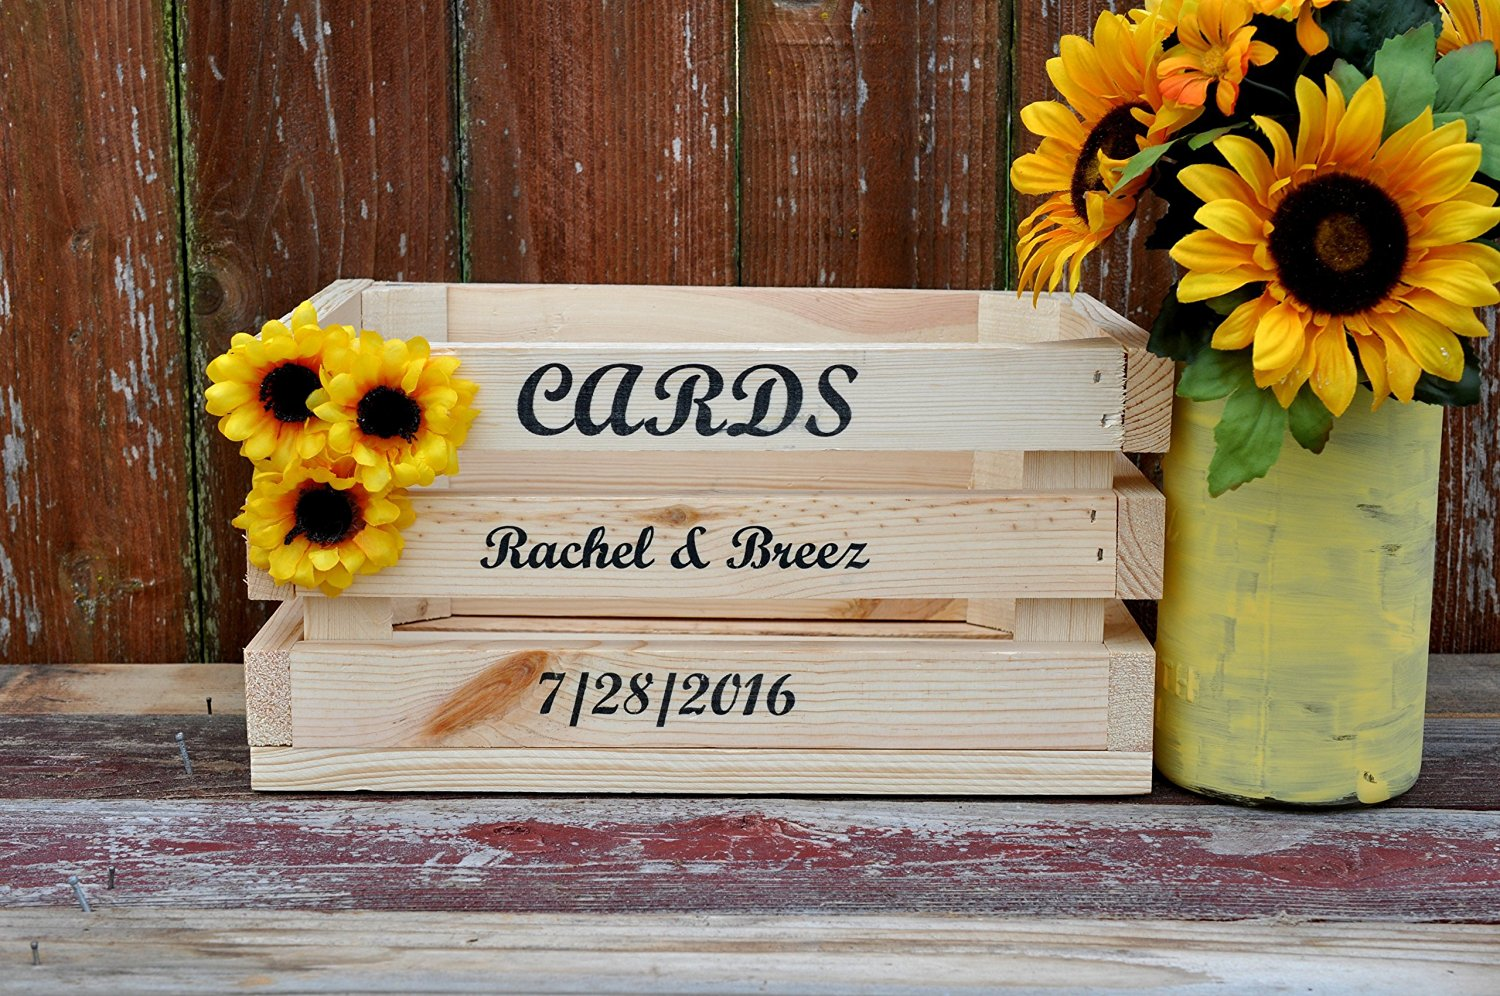 Buy Rustic wedding card holder natural wood crate personalized front color  choice holds 100+ cards in Cheap Price on Alibaba.com